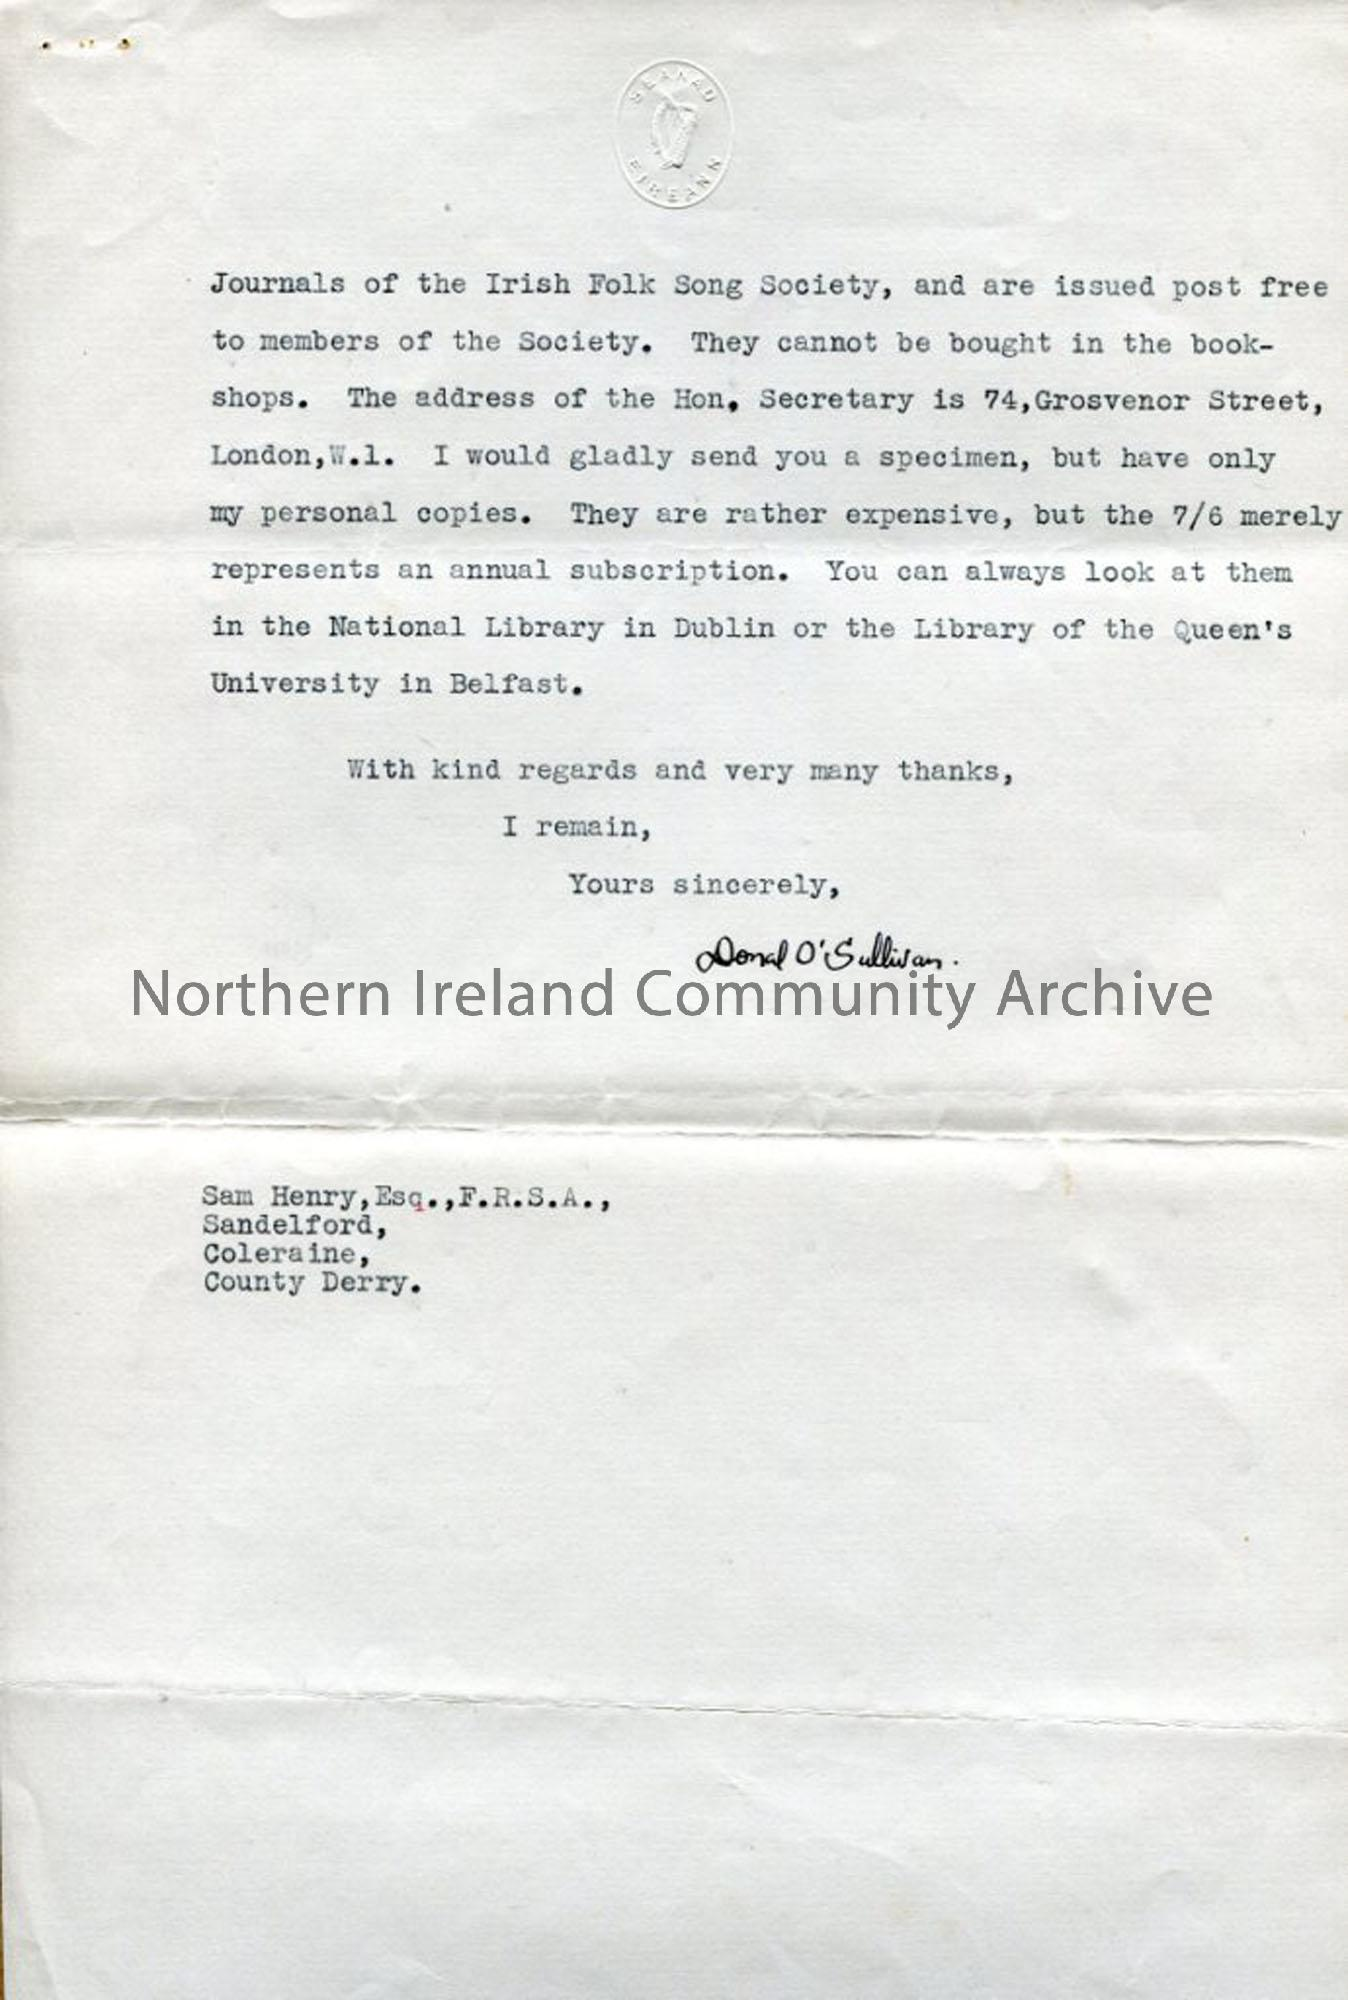 Page two of two – Letter from Donal O'Sullivan, 28.7.1936